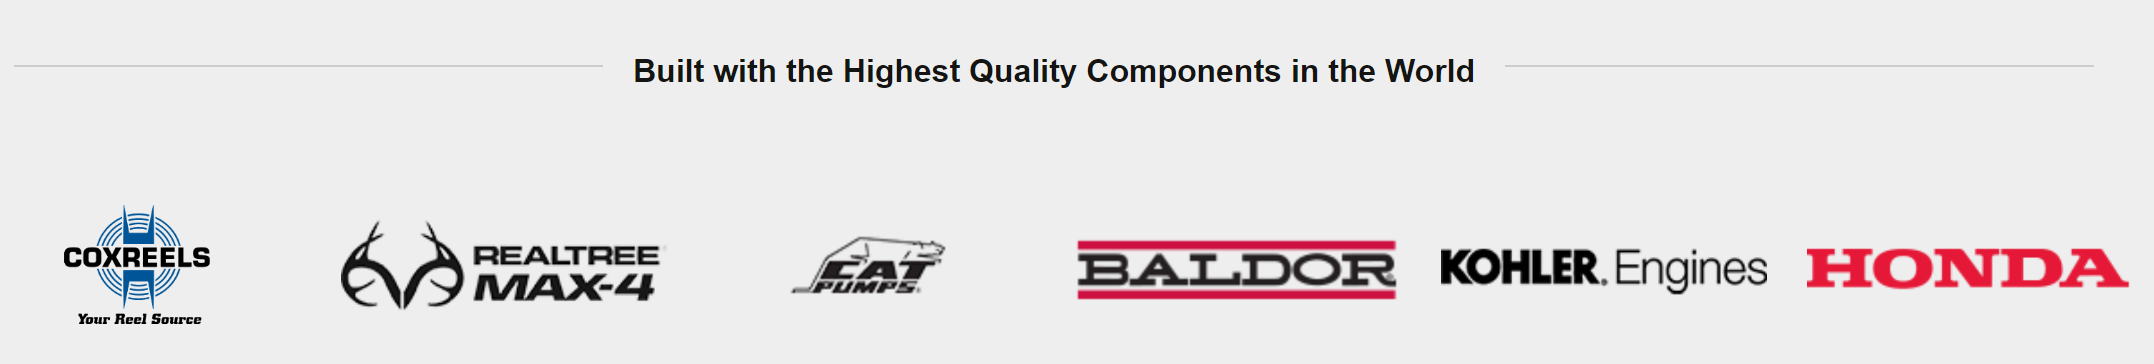 Eazy Kleen - Built with the Highest Quality Components in the World